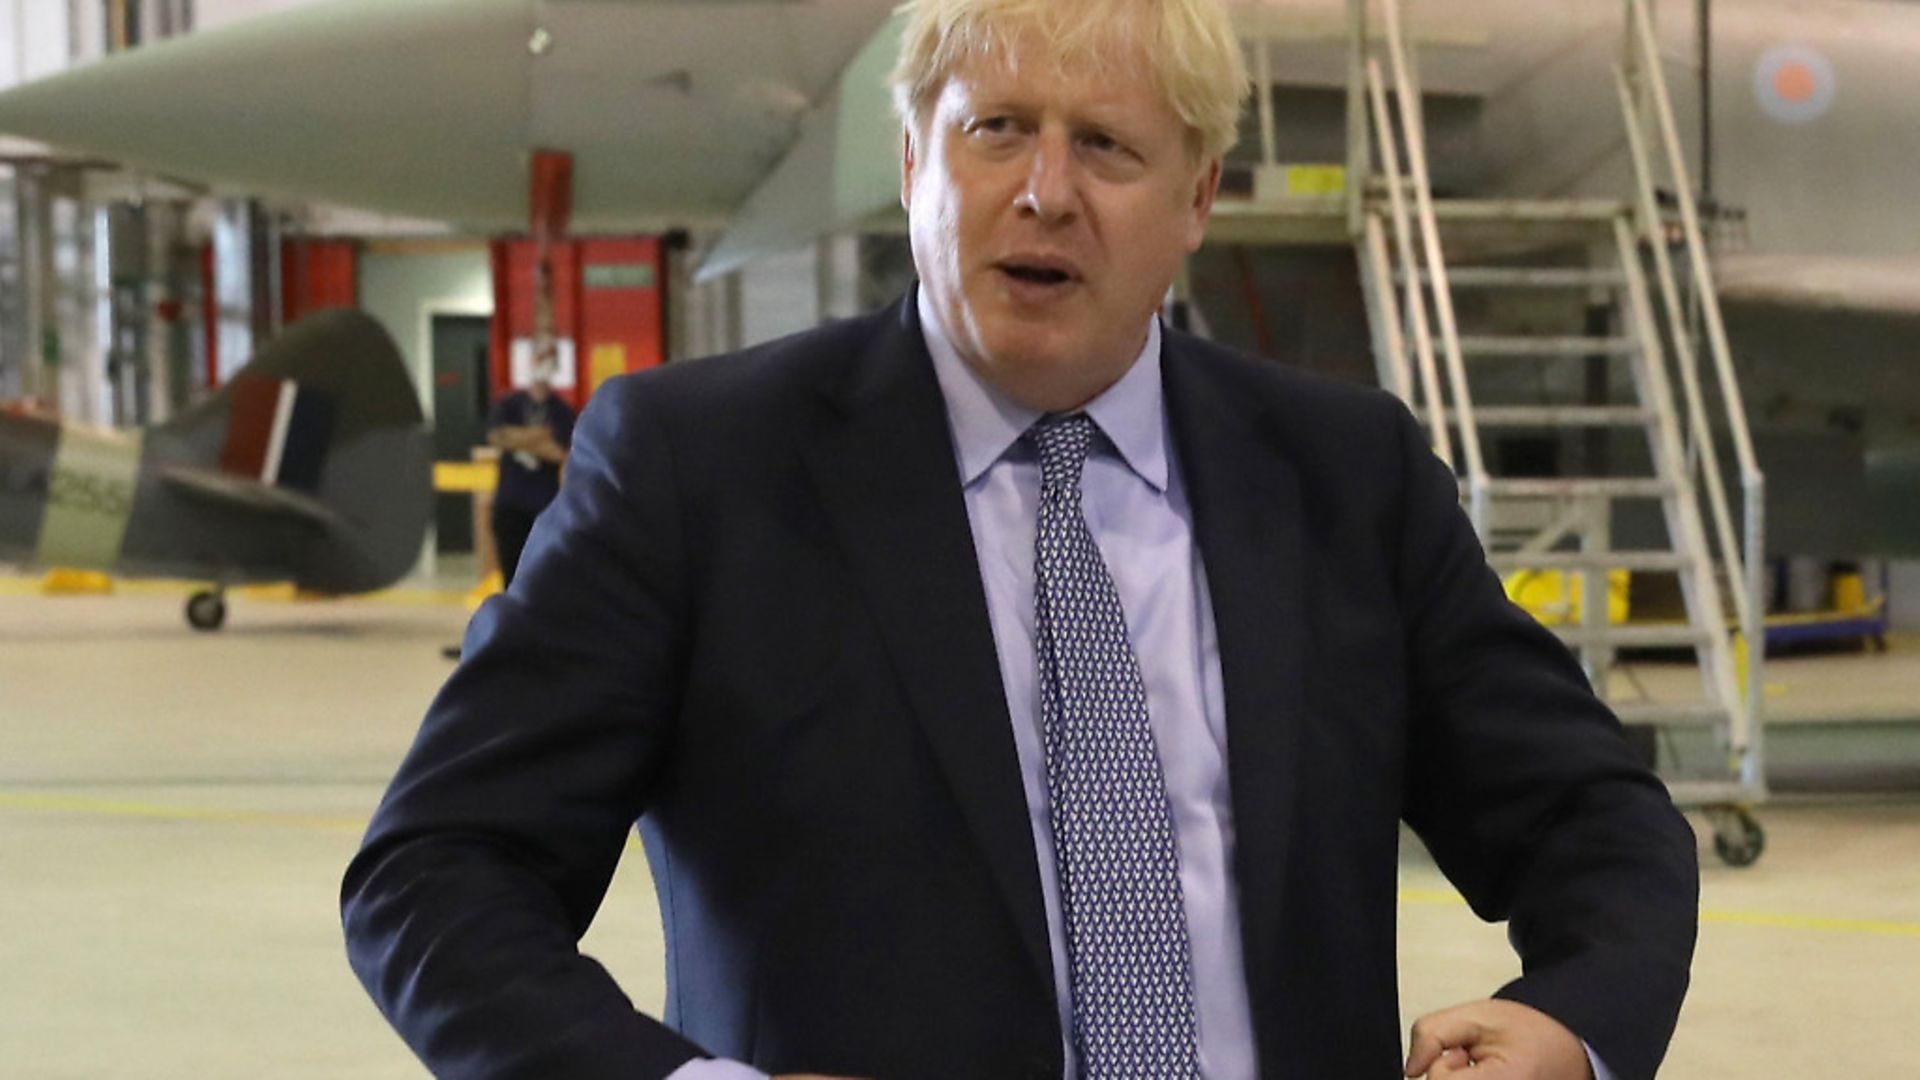 Prime Minister Boris Johnson. Photo: Andrew Milligan - WPA Pool/Getty Images - Credit: Getty Images